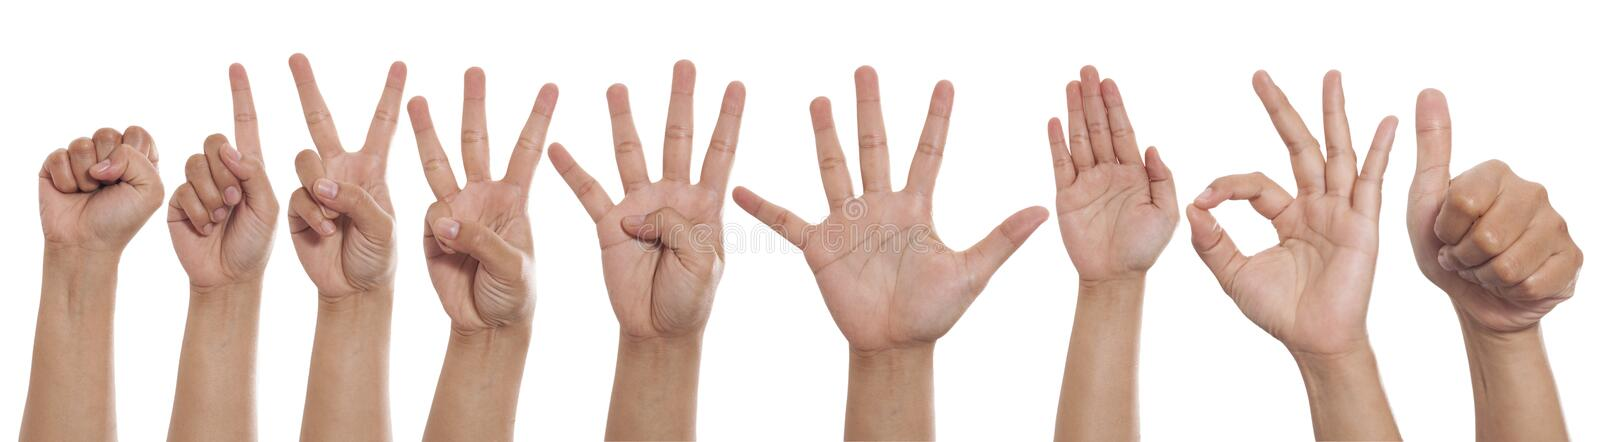 Collage of hands showing different gestures, number hand finger signs set stock photo